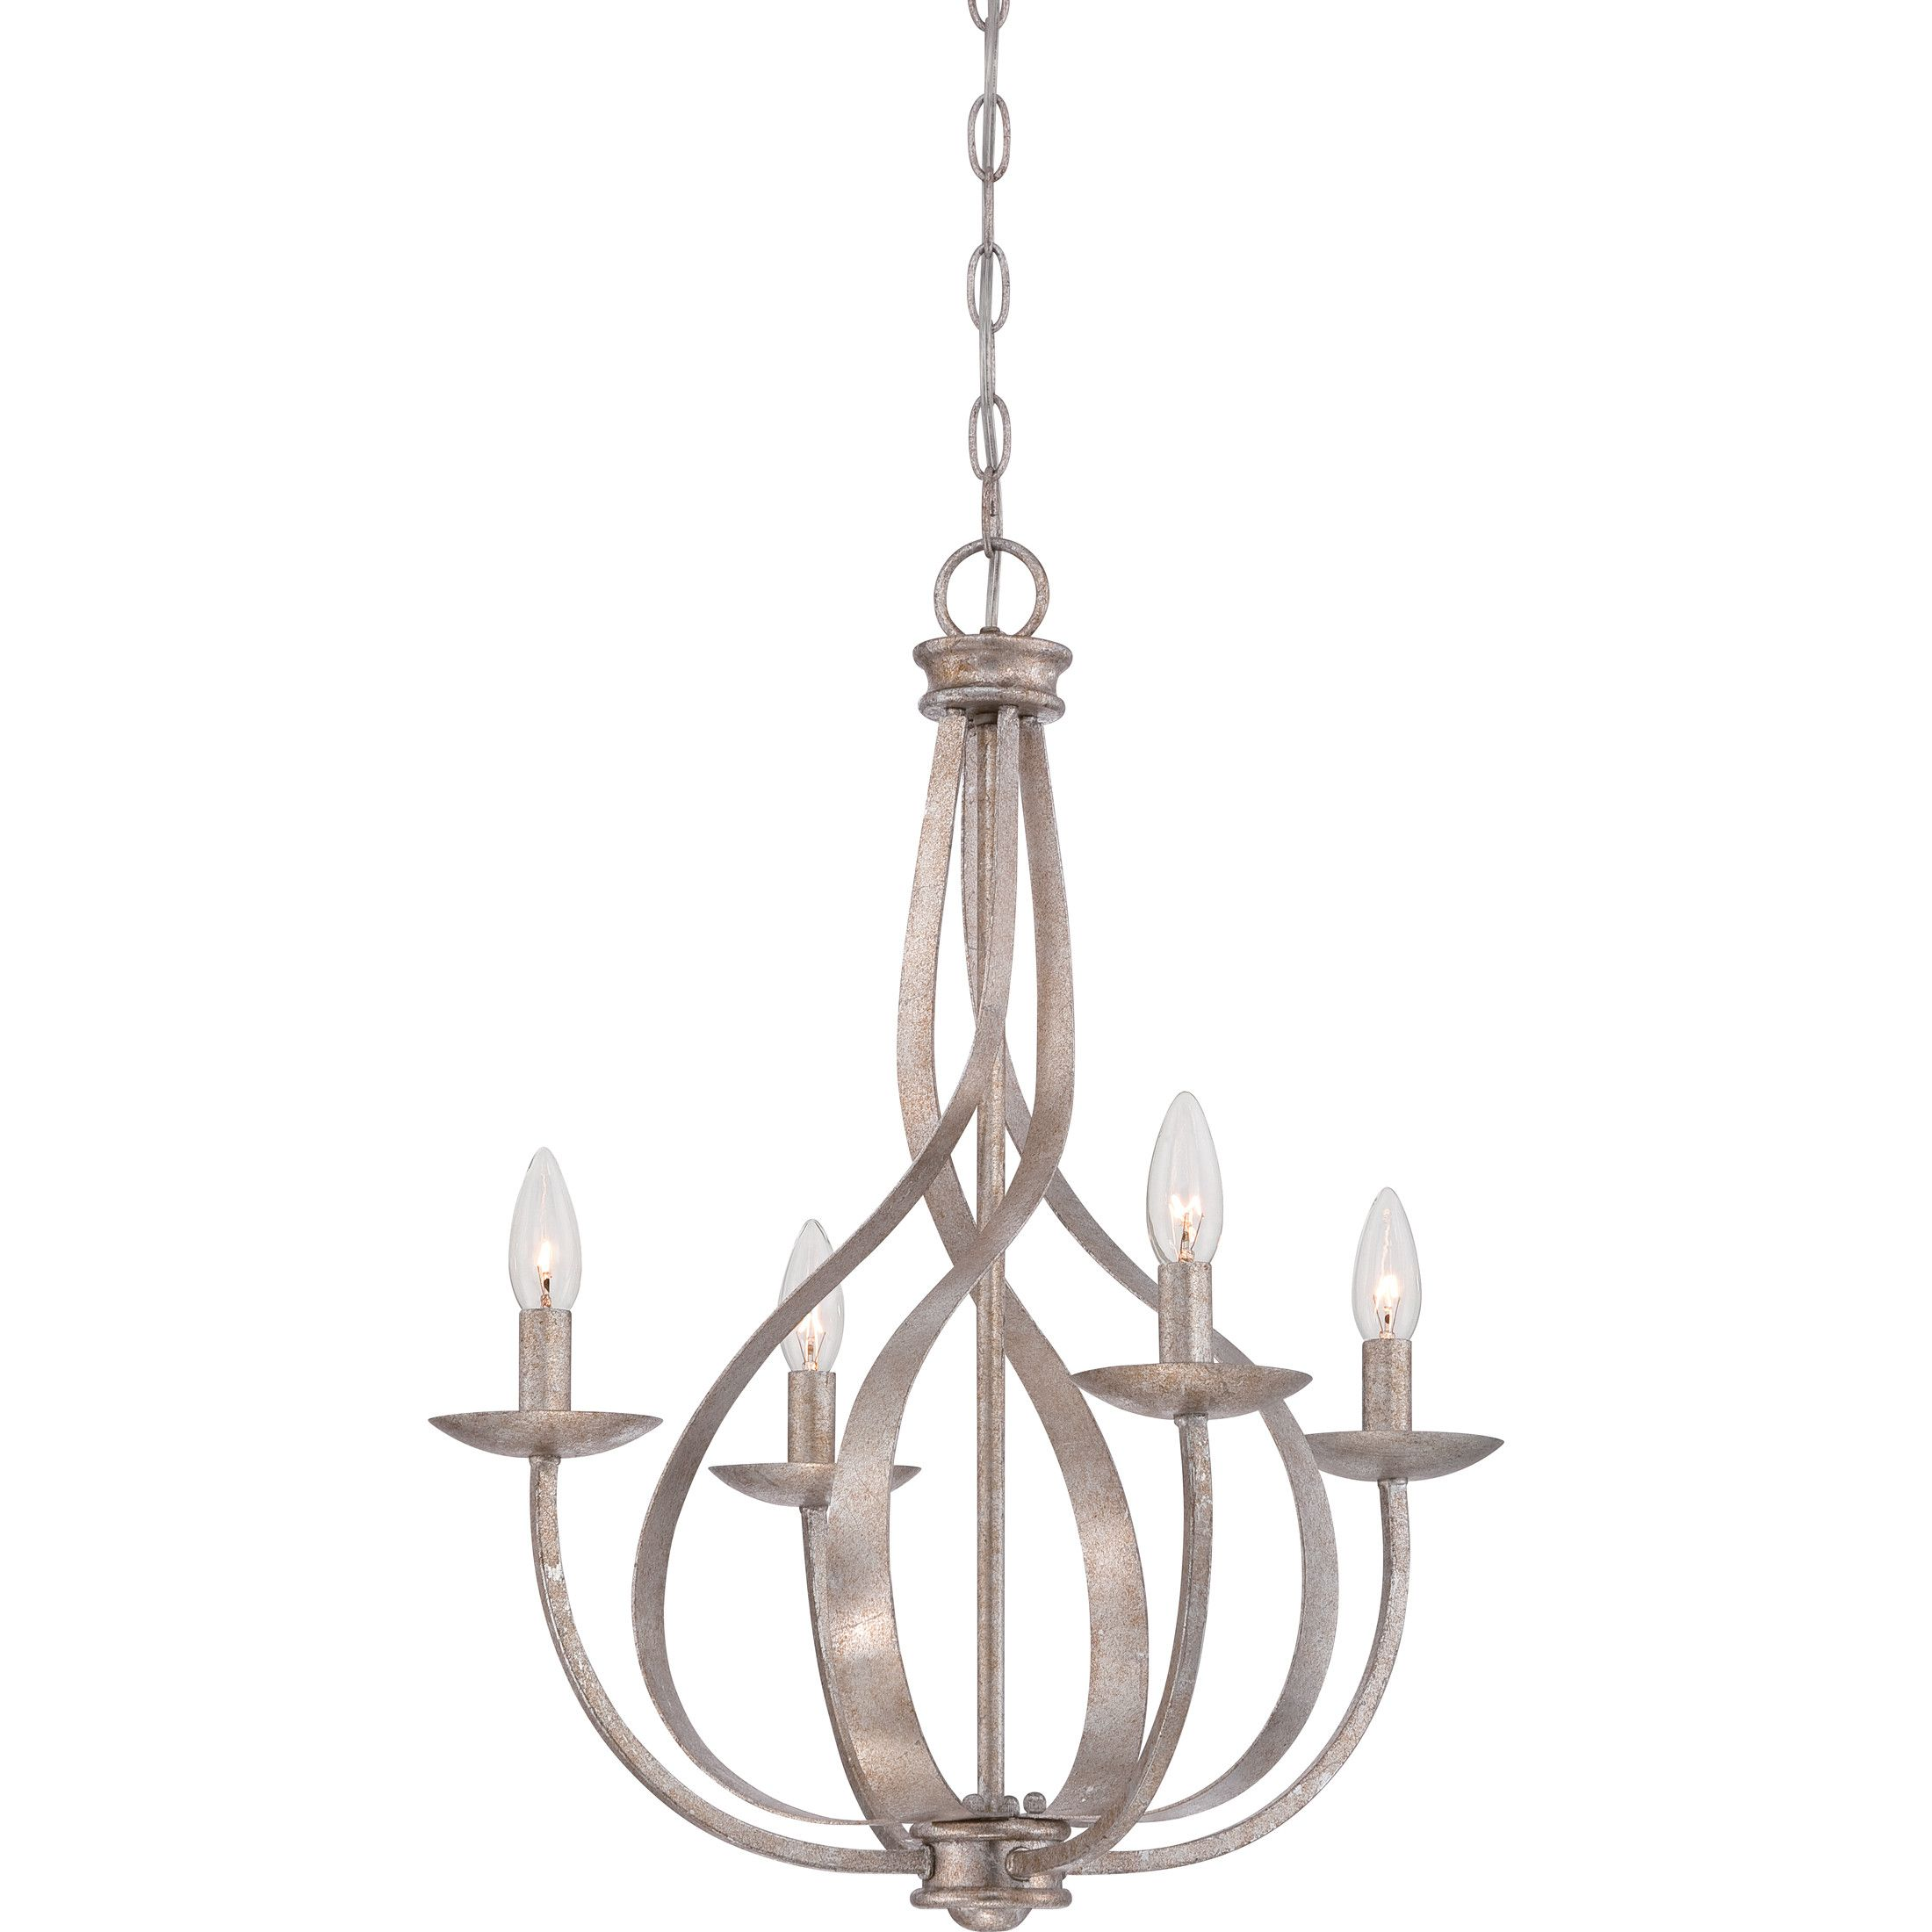 Quoizel Serenity 4 Light Candle Chandelier